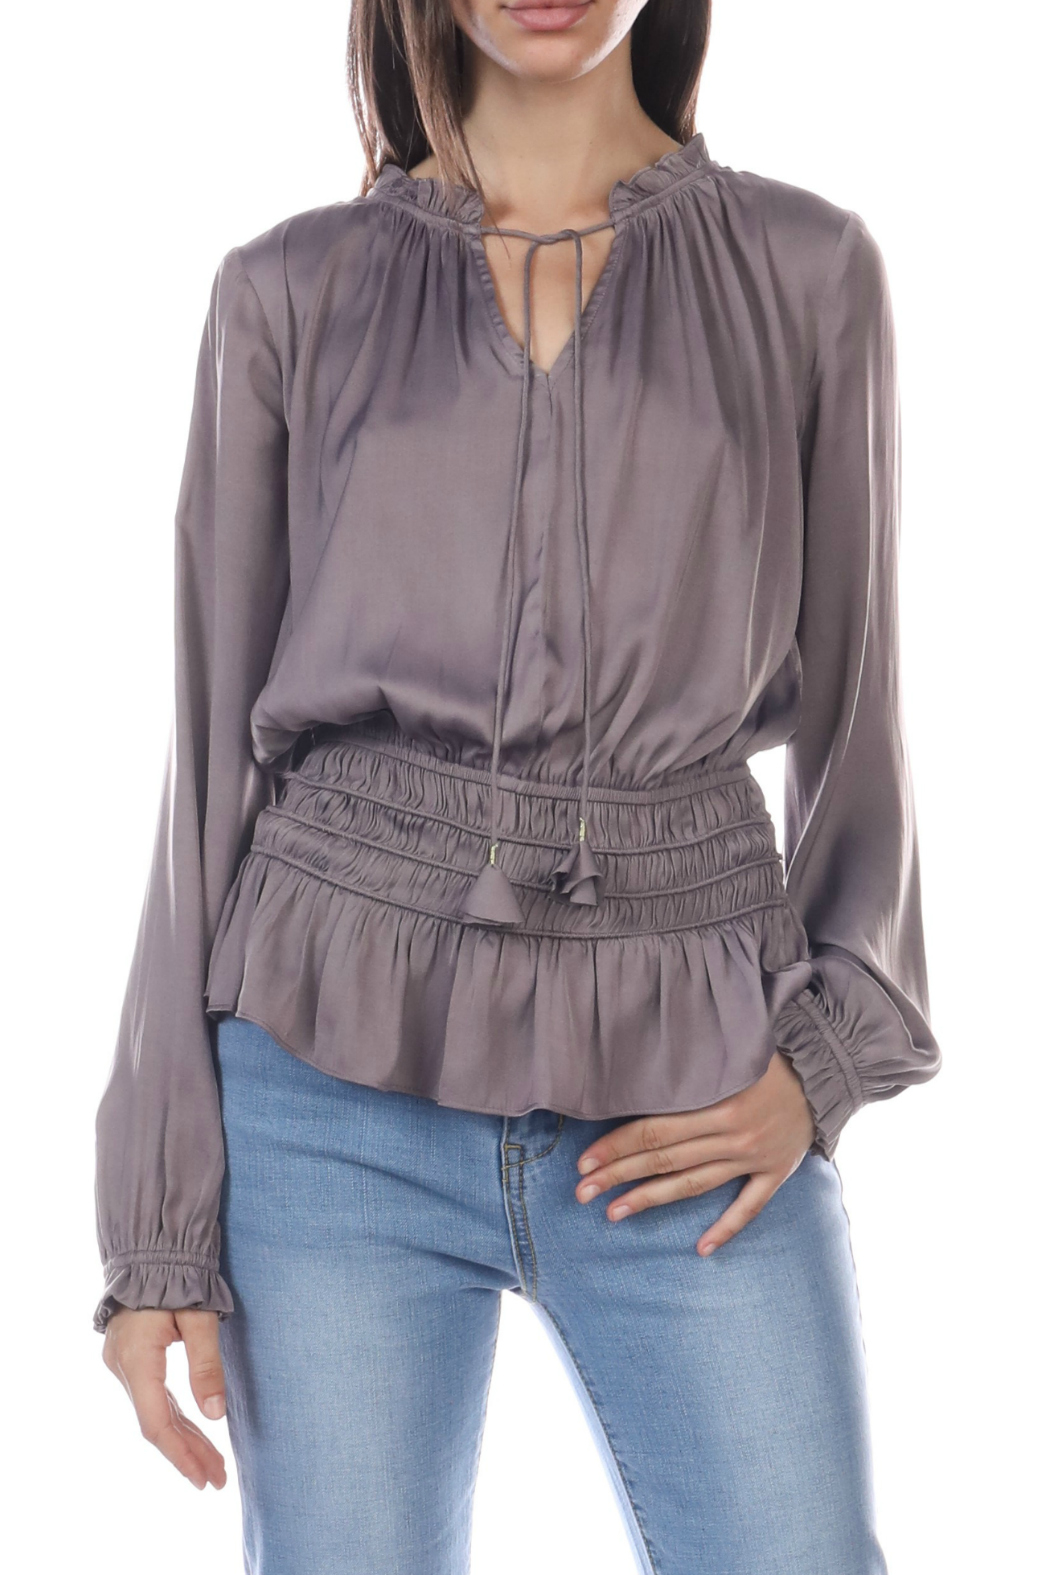 Current Air Smocked Waist Tie Front Blouse - Main Image